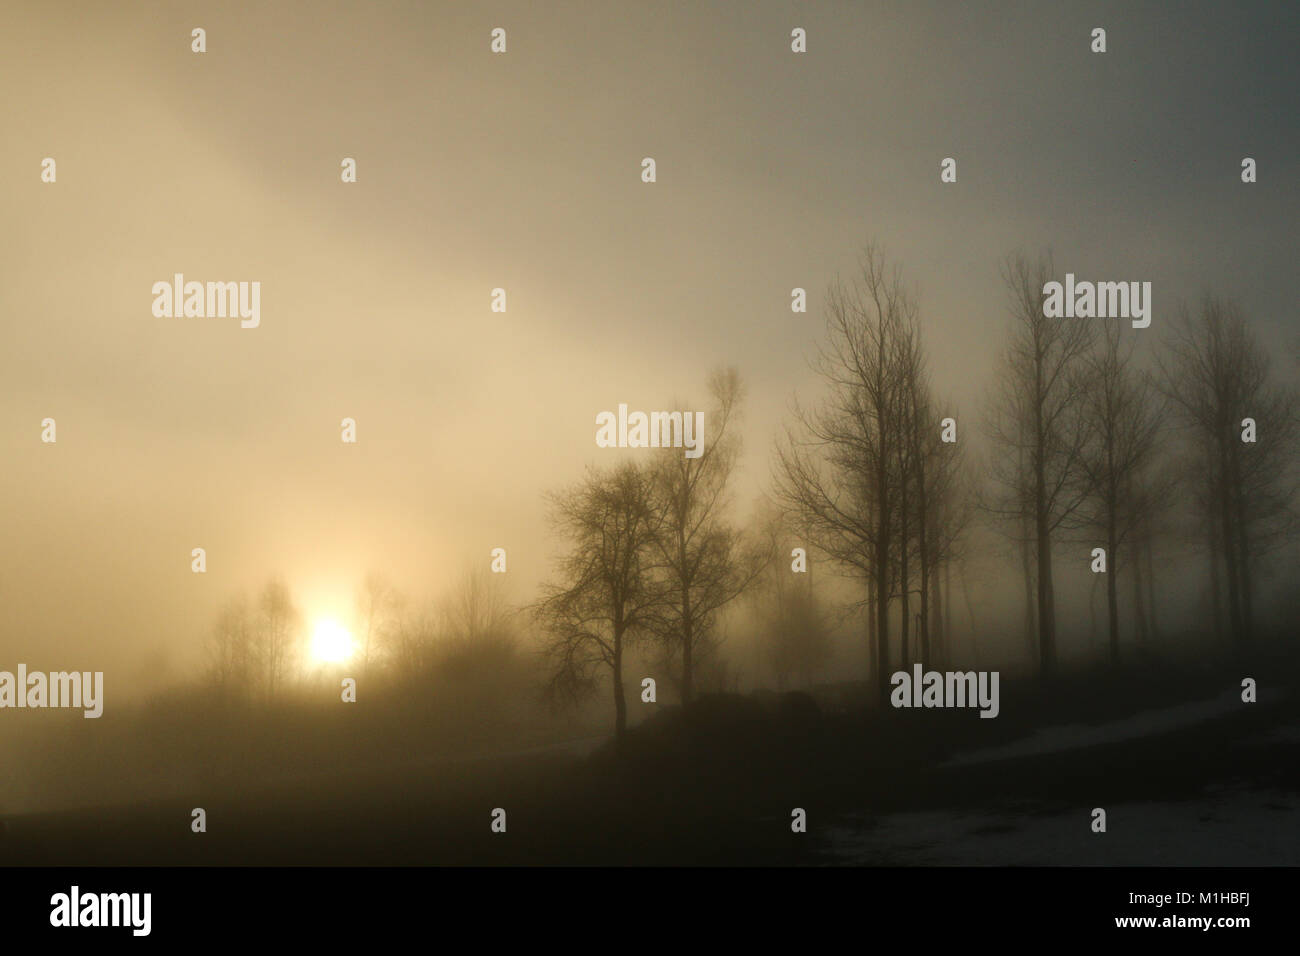 A picture of some trees on a small hill standing in the morning mist. Look mysterious and enigmatic. Stock Photo